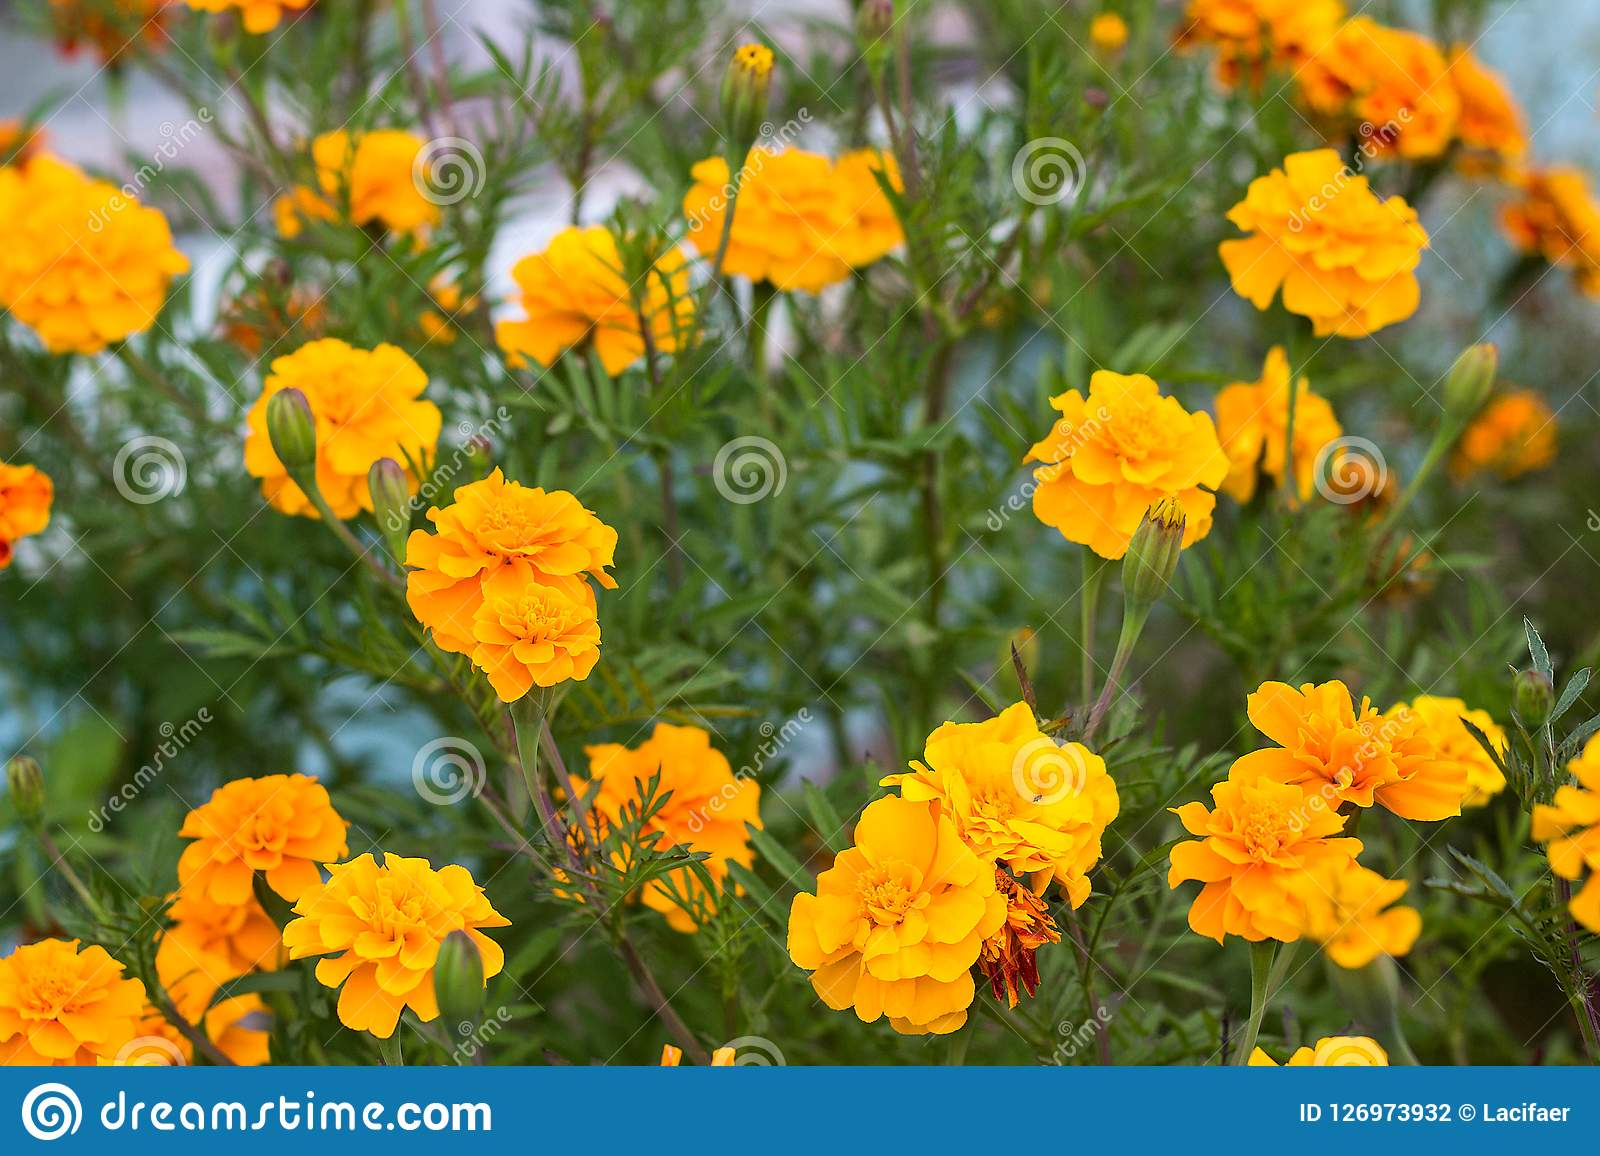 Summer background with growing flowers calendula, marigold.